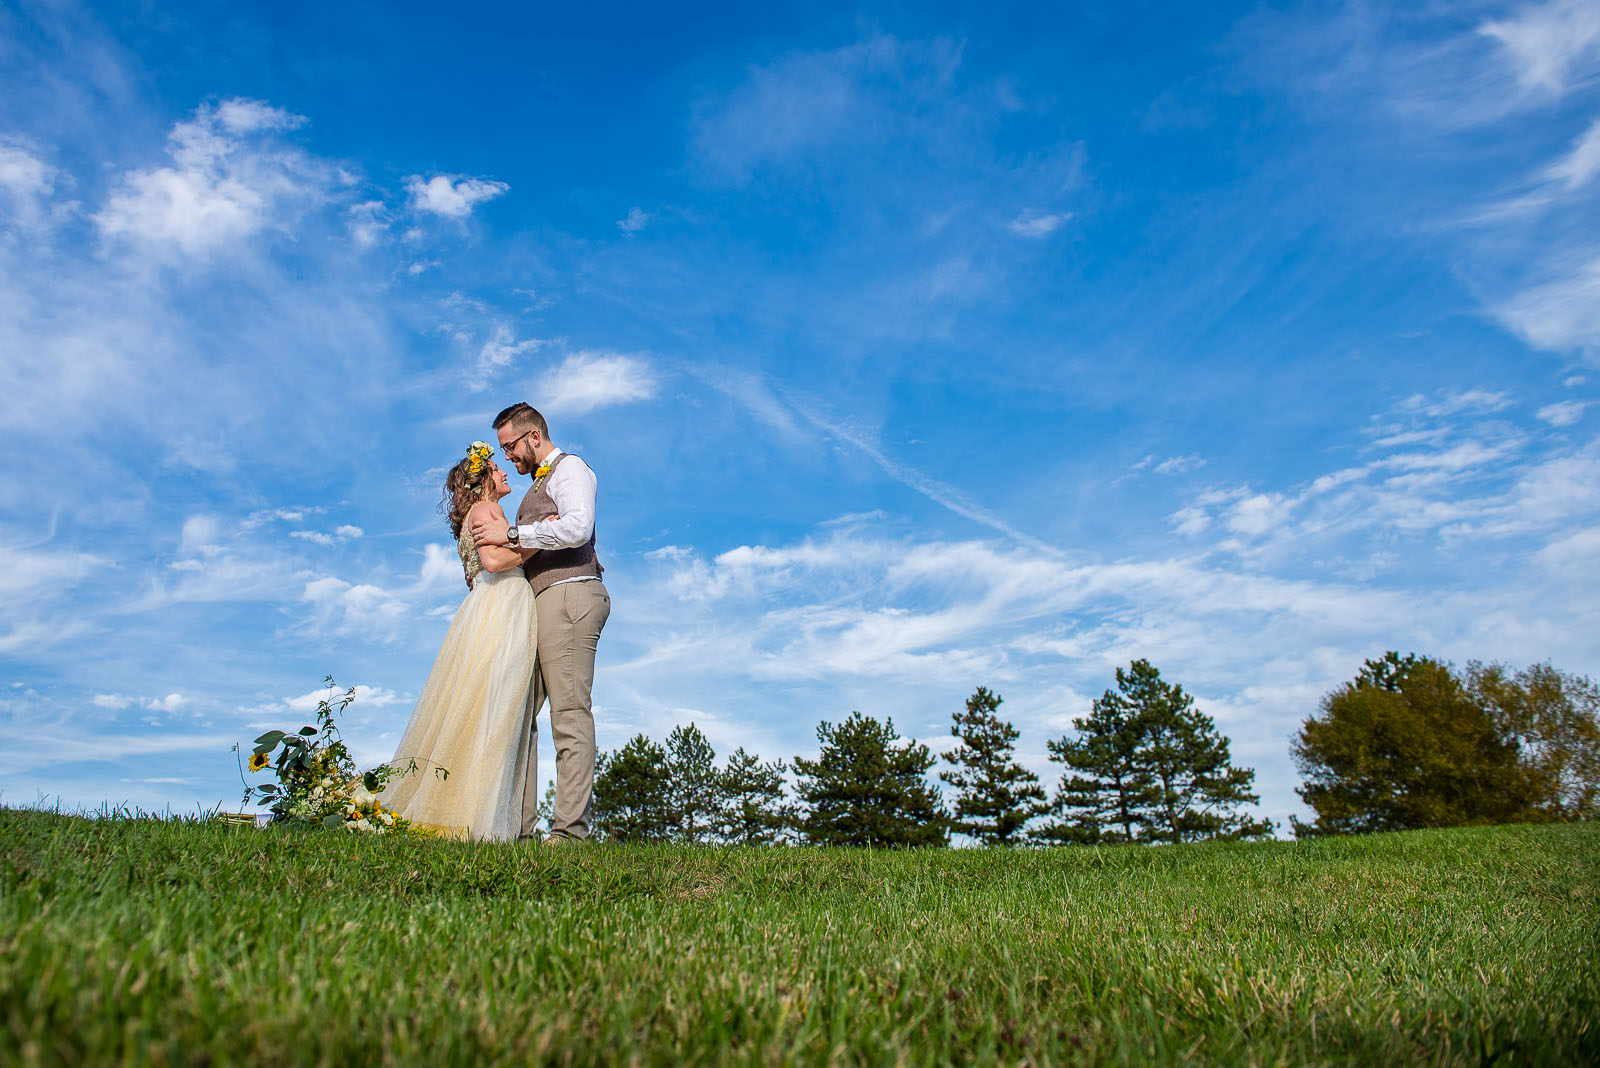 Eric_and_Christy_Photography_Blog_Wedding_Lauren_Jon-28